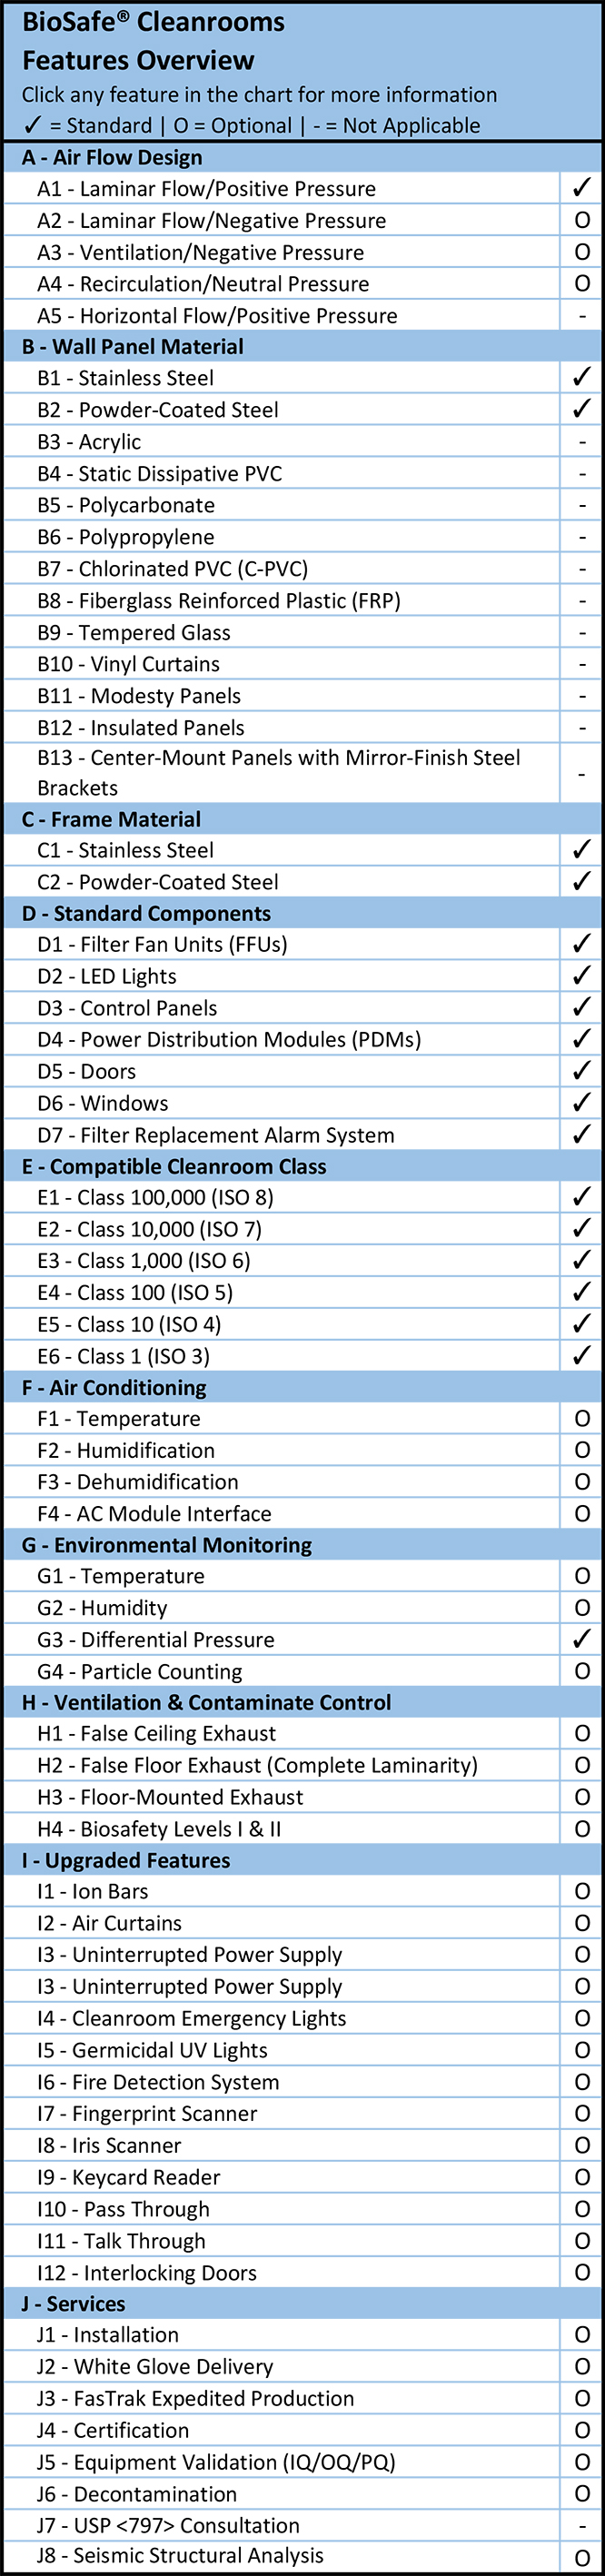 BioSafe® Cleanrooms Feature Comparison Overview